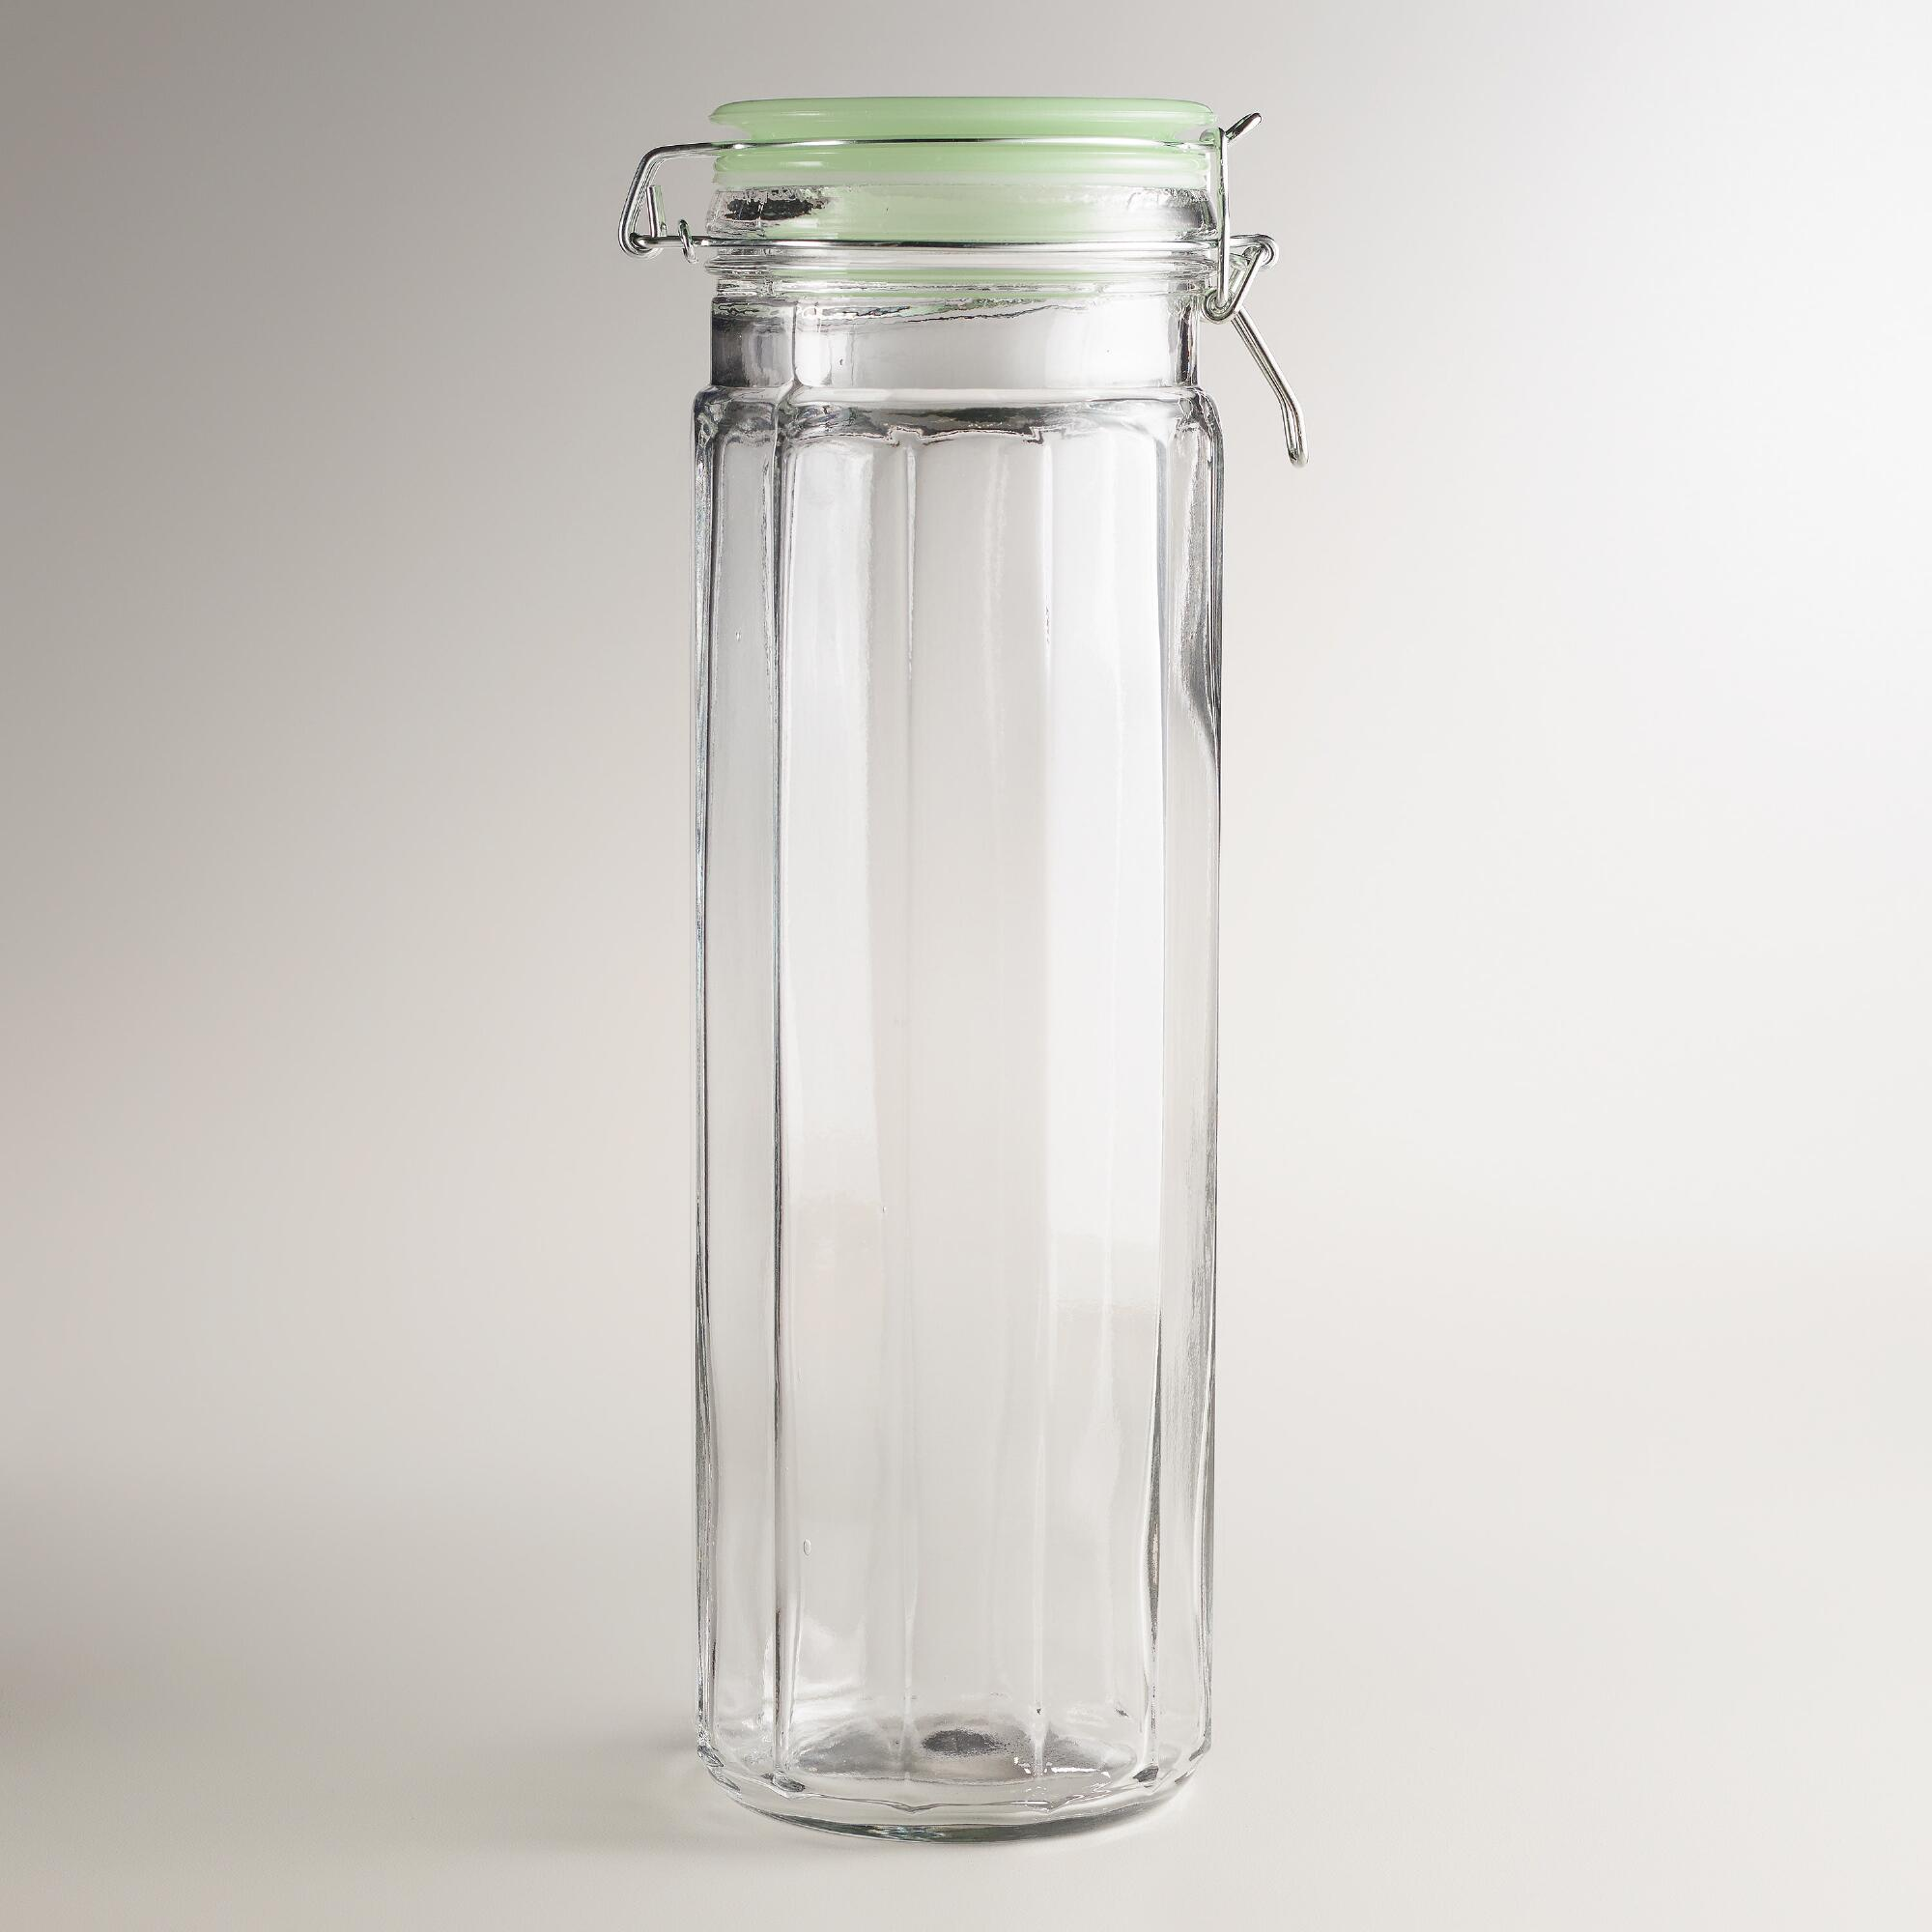 Browse a variety of plastic and glass food containers for lunches, leftovers and more. Order online. Heritage Hill Glass Jars with Lids $ - $ Glass Storage Canisters with Stainless Steel Lids $ - $ Large Working Glasses 21 oz., Set of 12 Set Savings $ open stock $